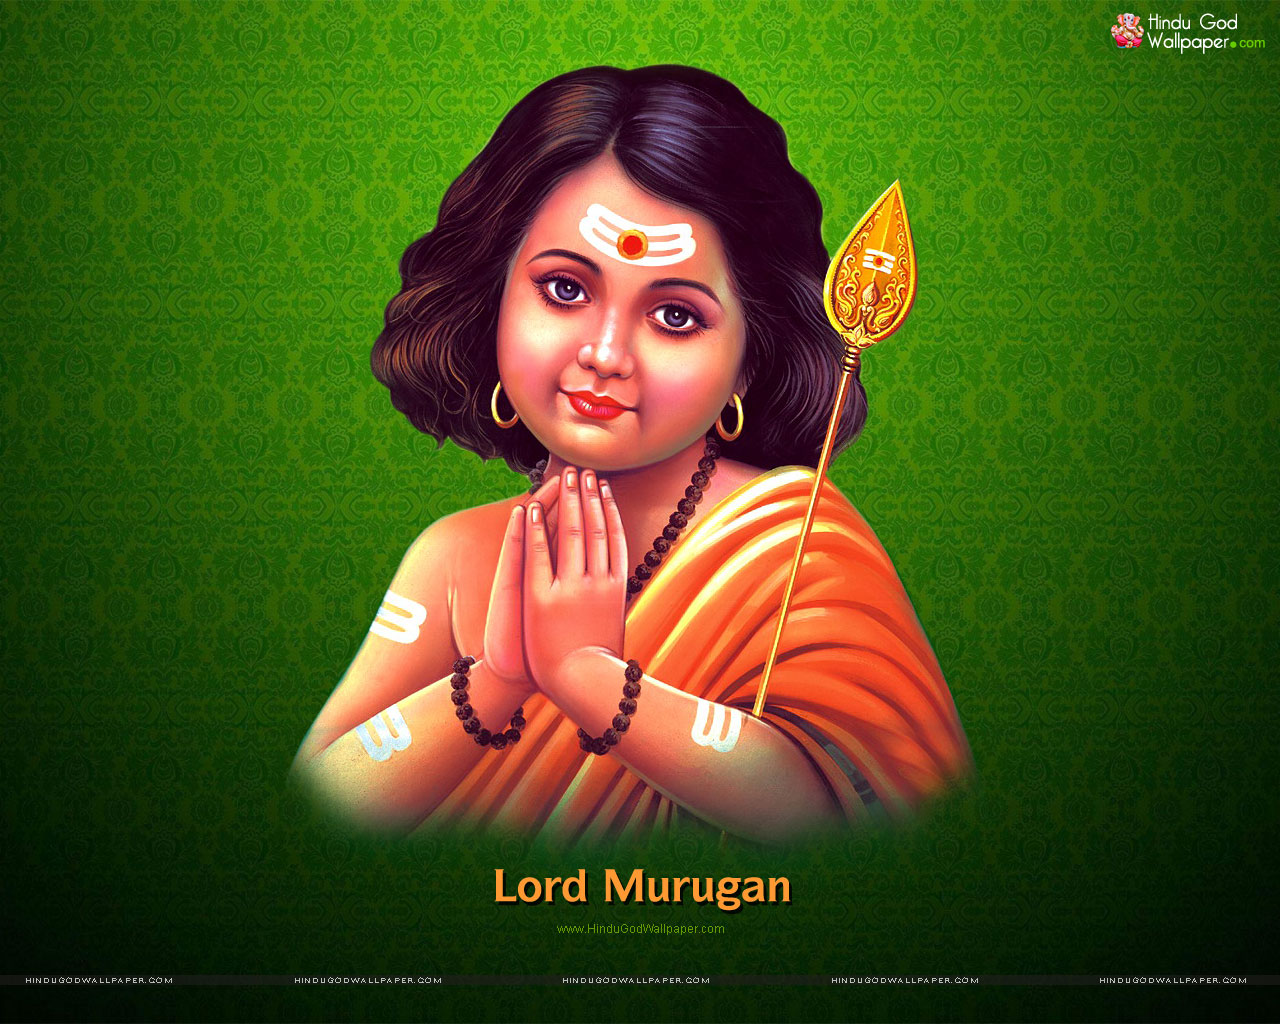 Lord Murugan Wallpapers Top Free Lord Murugan Backgrounds Wallpaperaccess